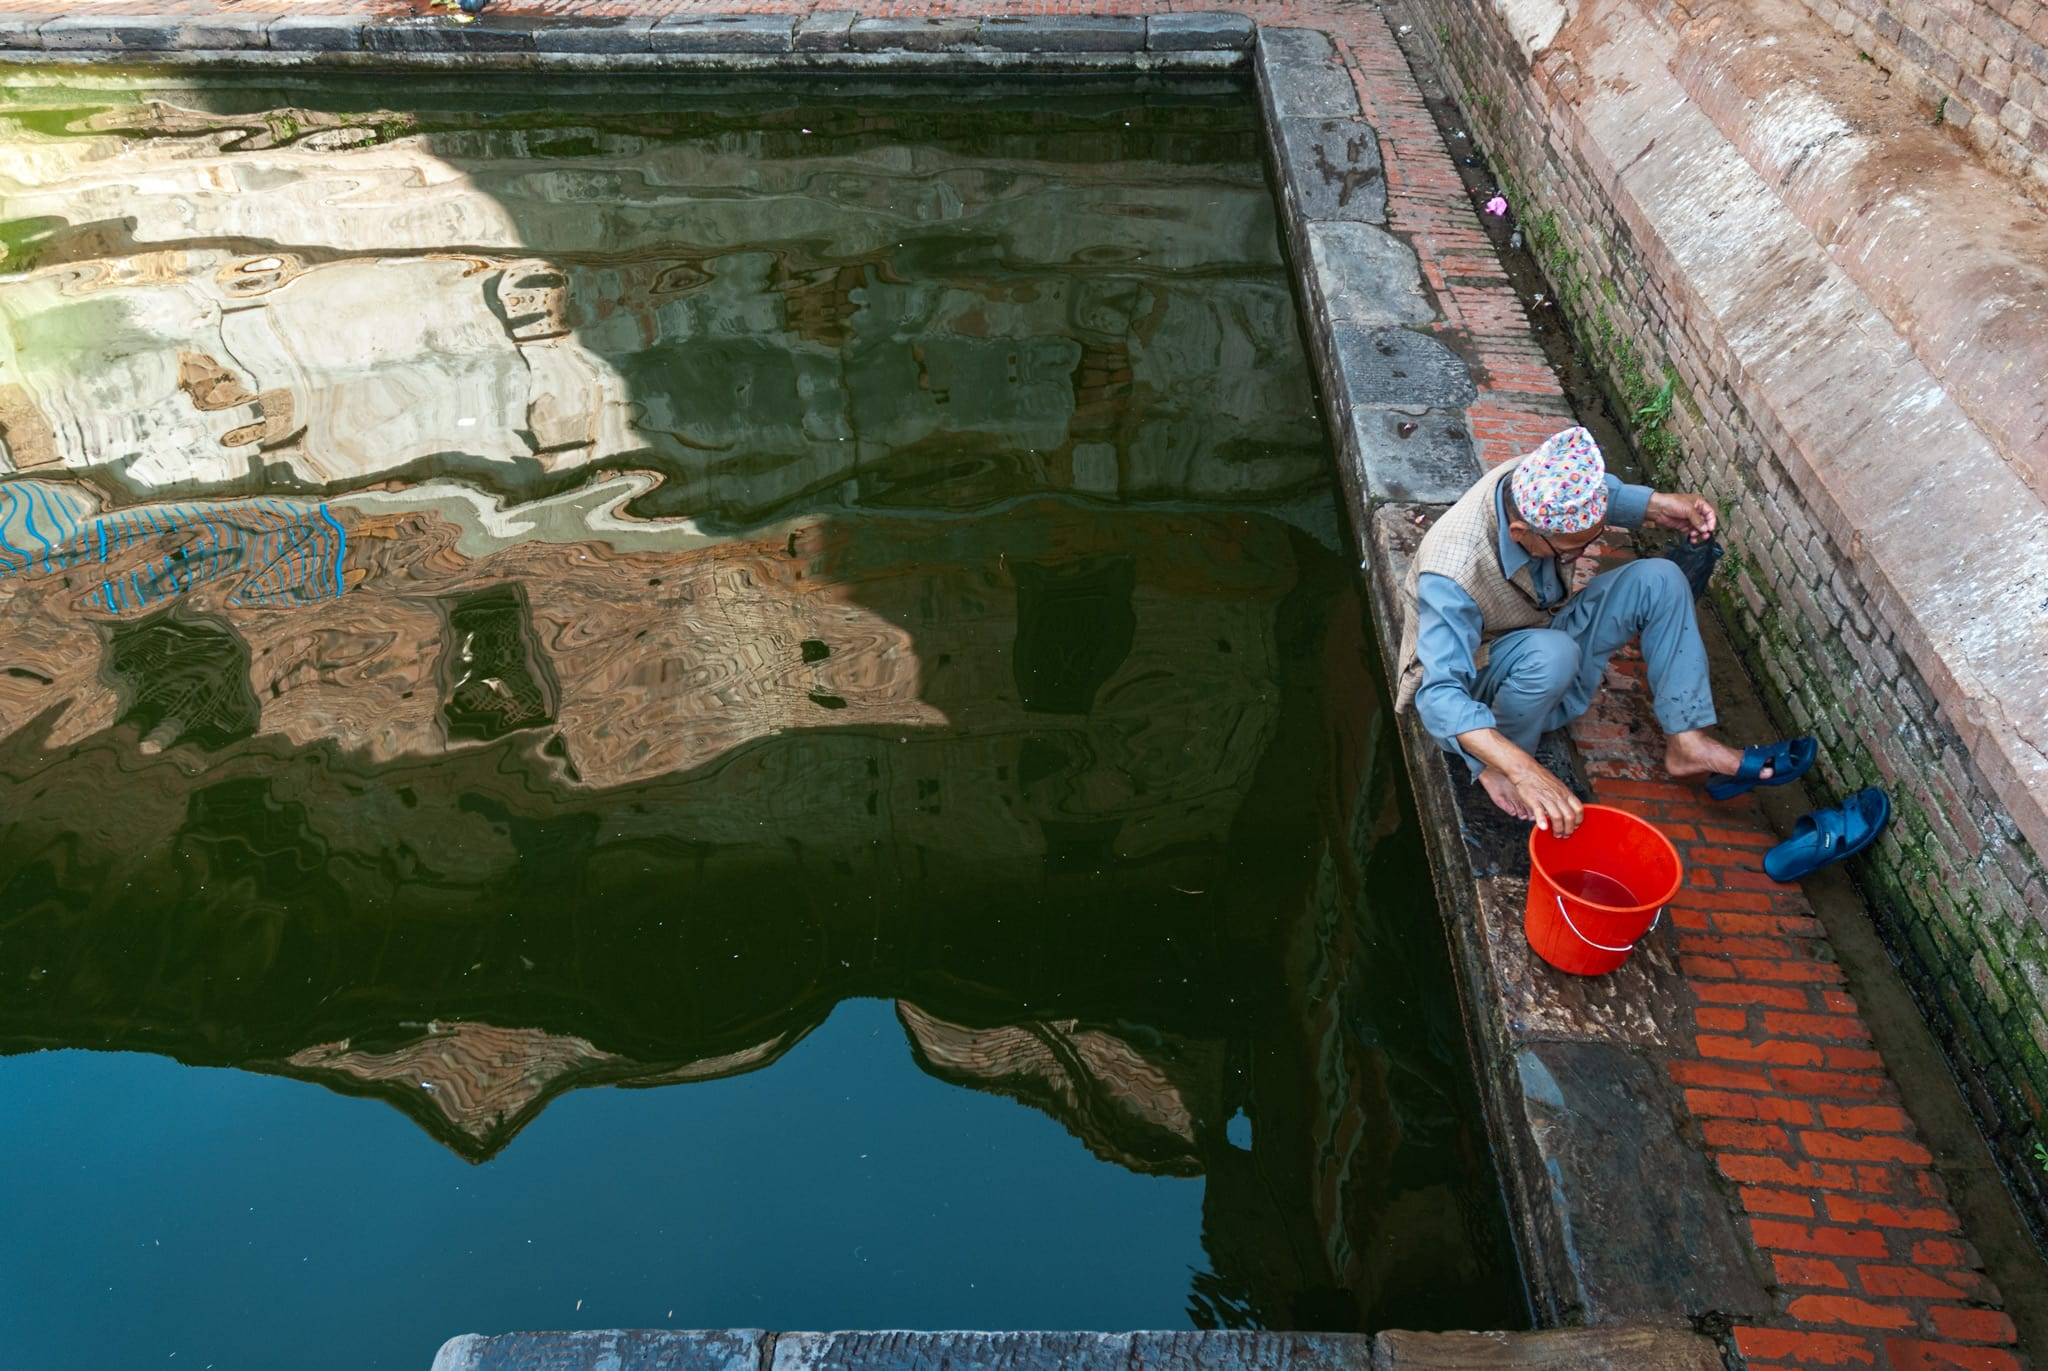 Nepalese man by a rectangular pool in Bhaktapur. Kathmandu Valley, Nepal.